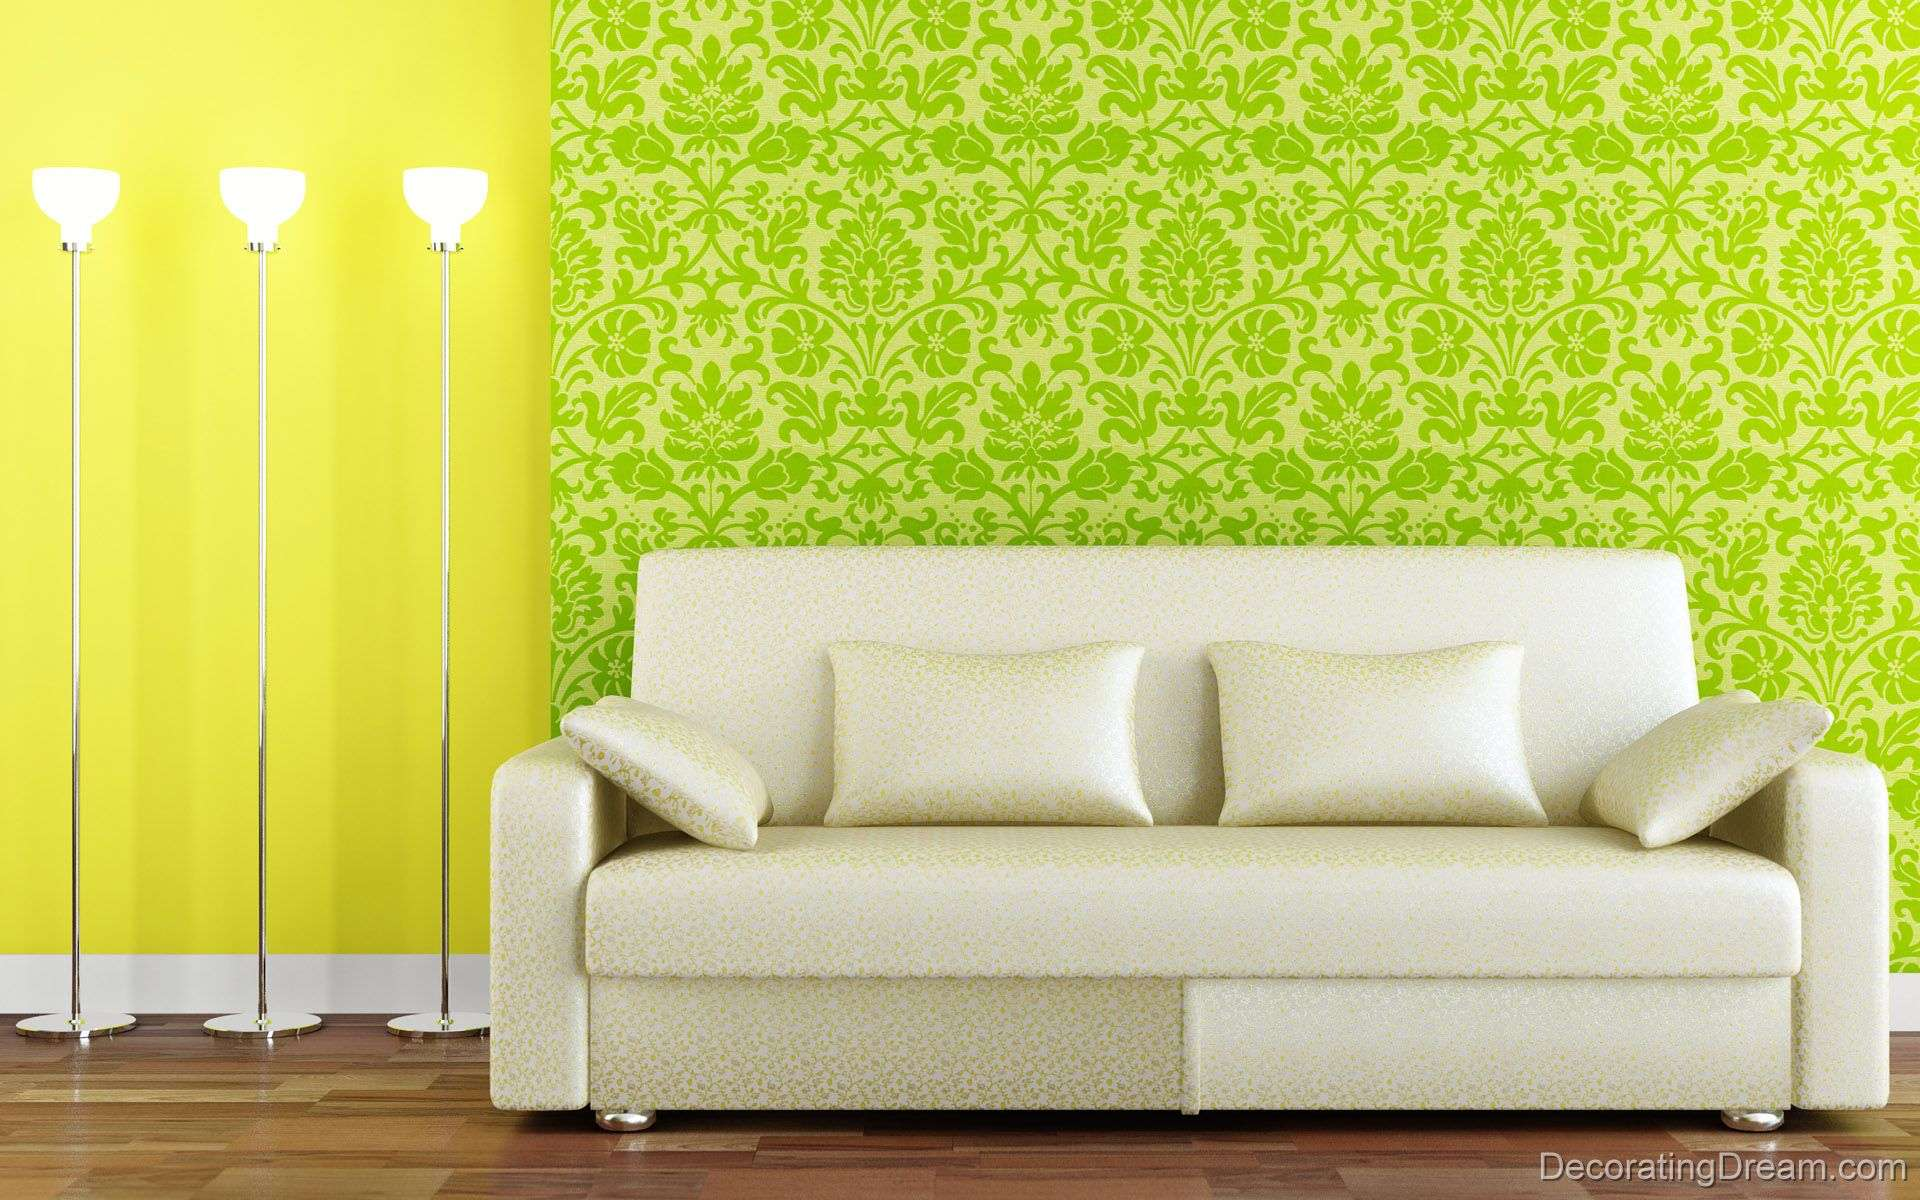 Green Living Room White Sofa Designs Decorating Dream